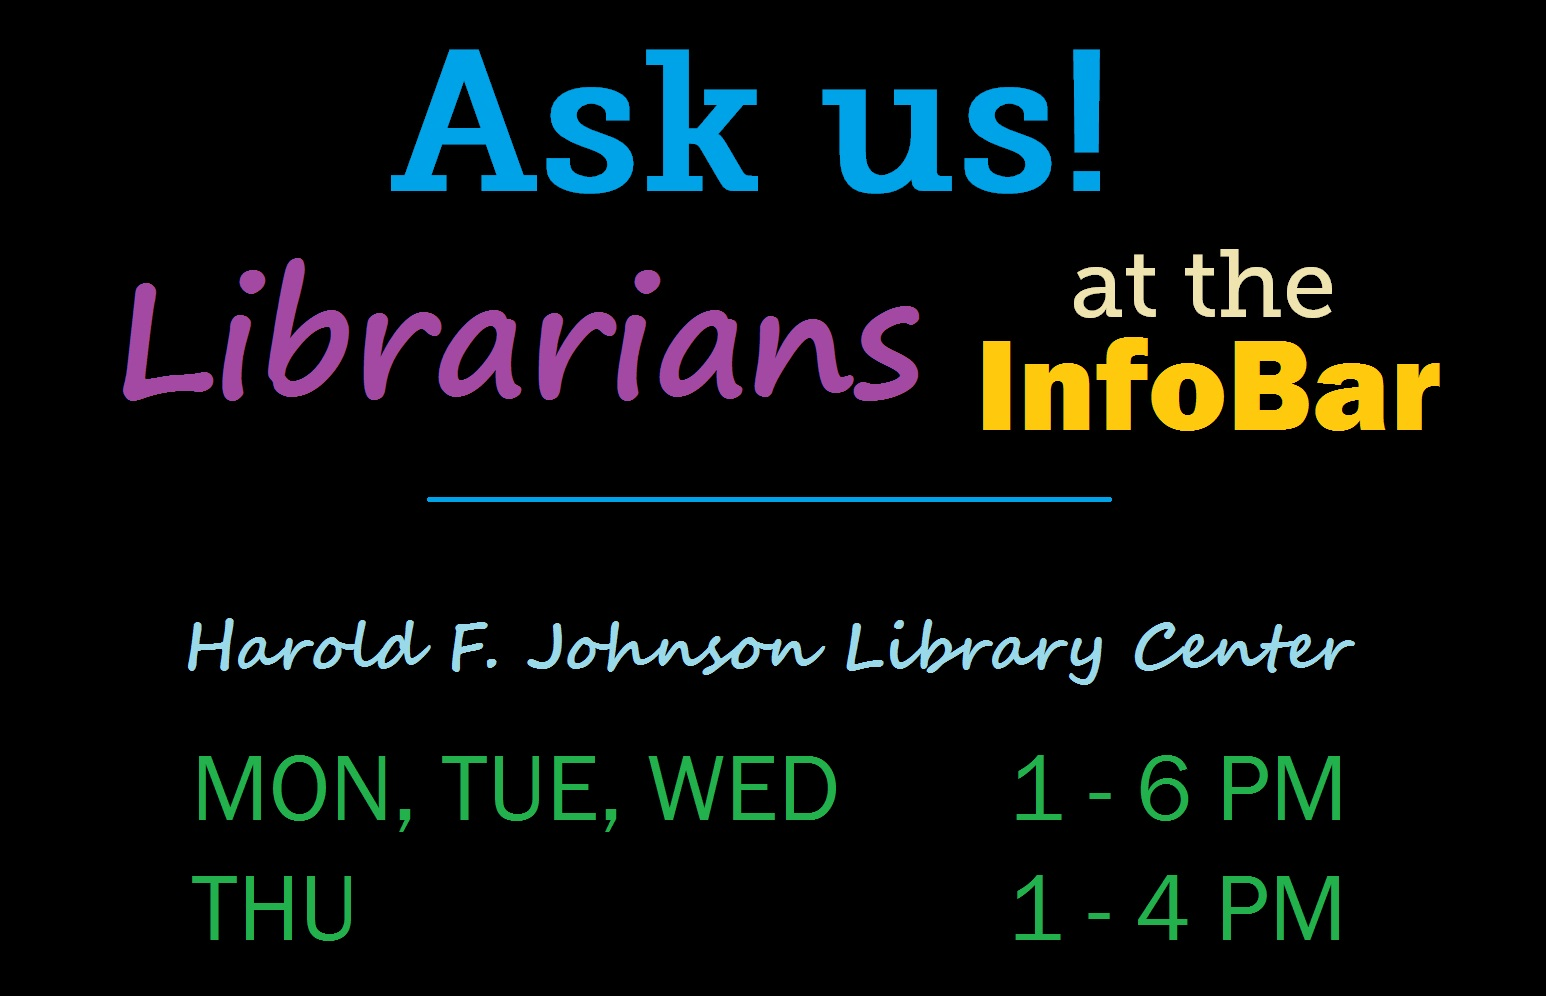 Have questions? Ask librarians at the Info bar, Mon-Thu, at 1-6 pm